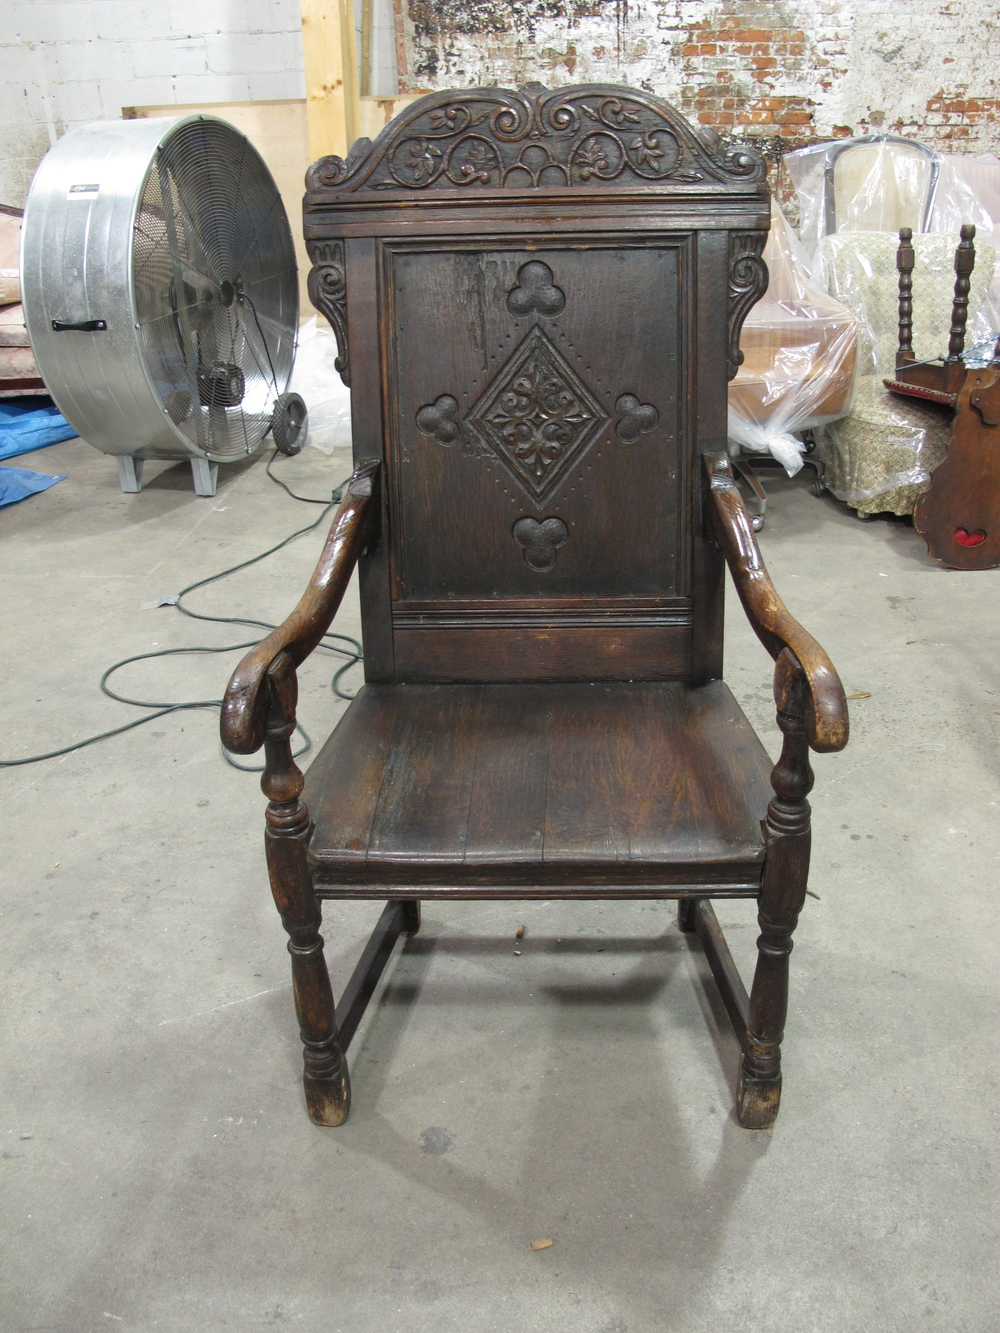 'Ace of Hearts' Carved Wood Throne $150